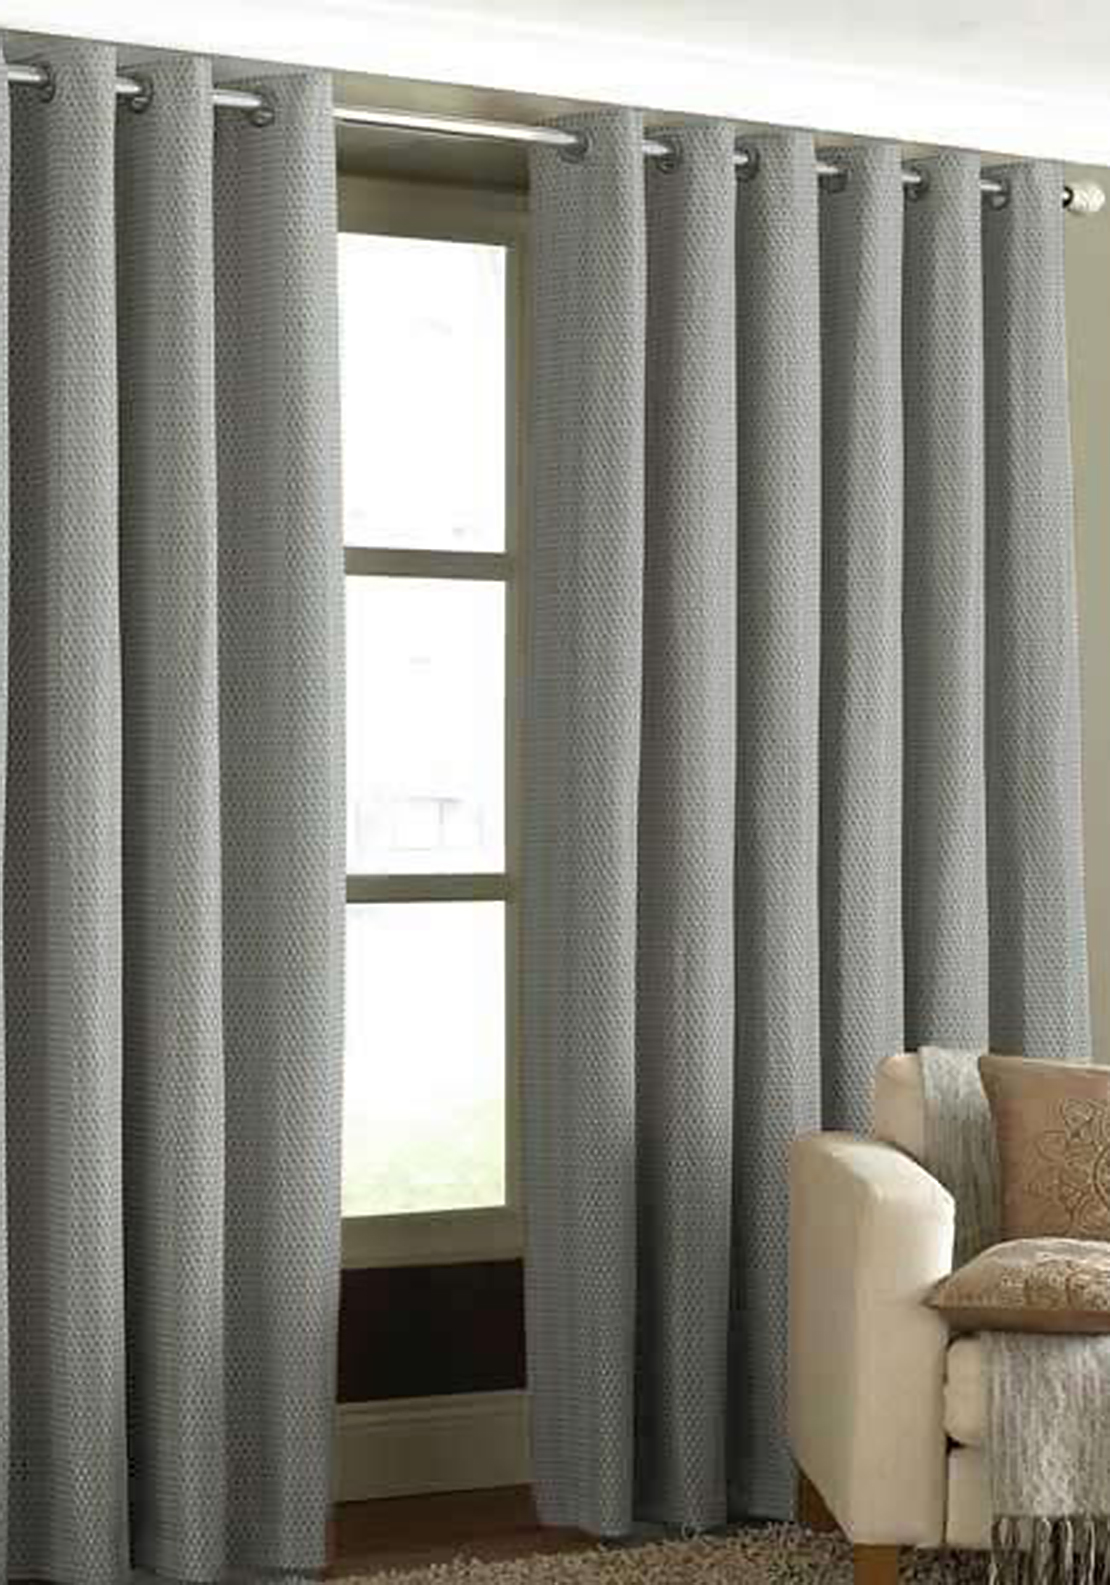 "Riva Tobago Fully Lined Eyelet Curtains 90""x90"", Silver"